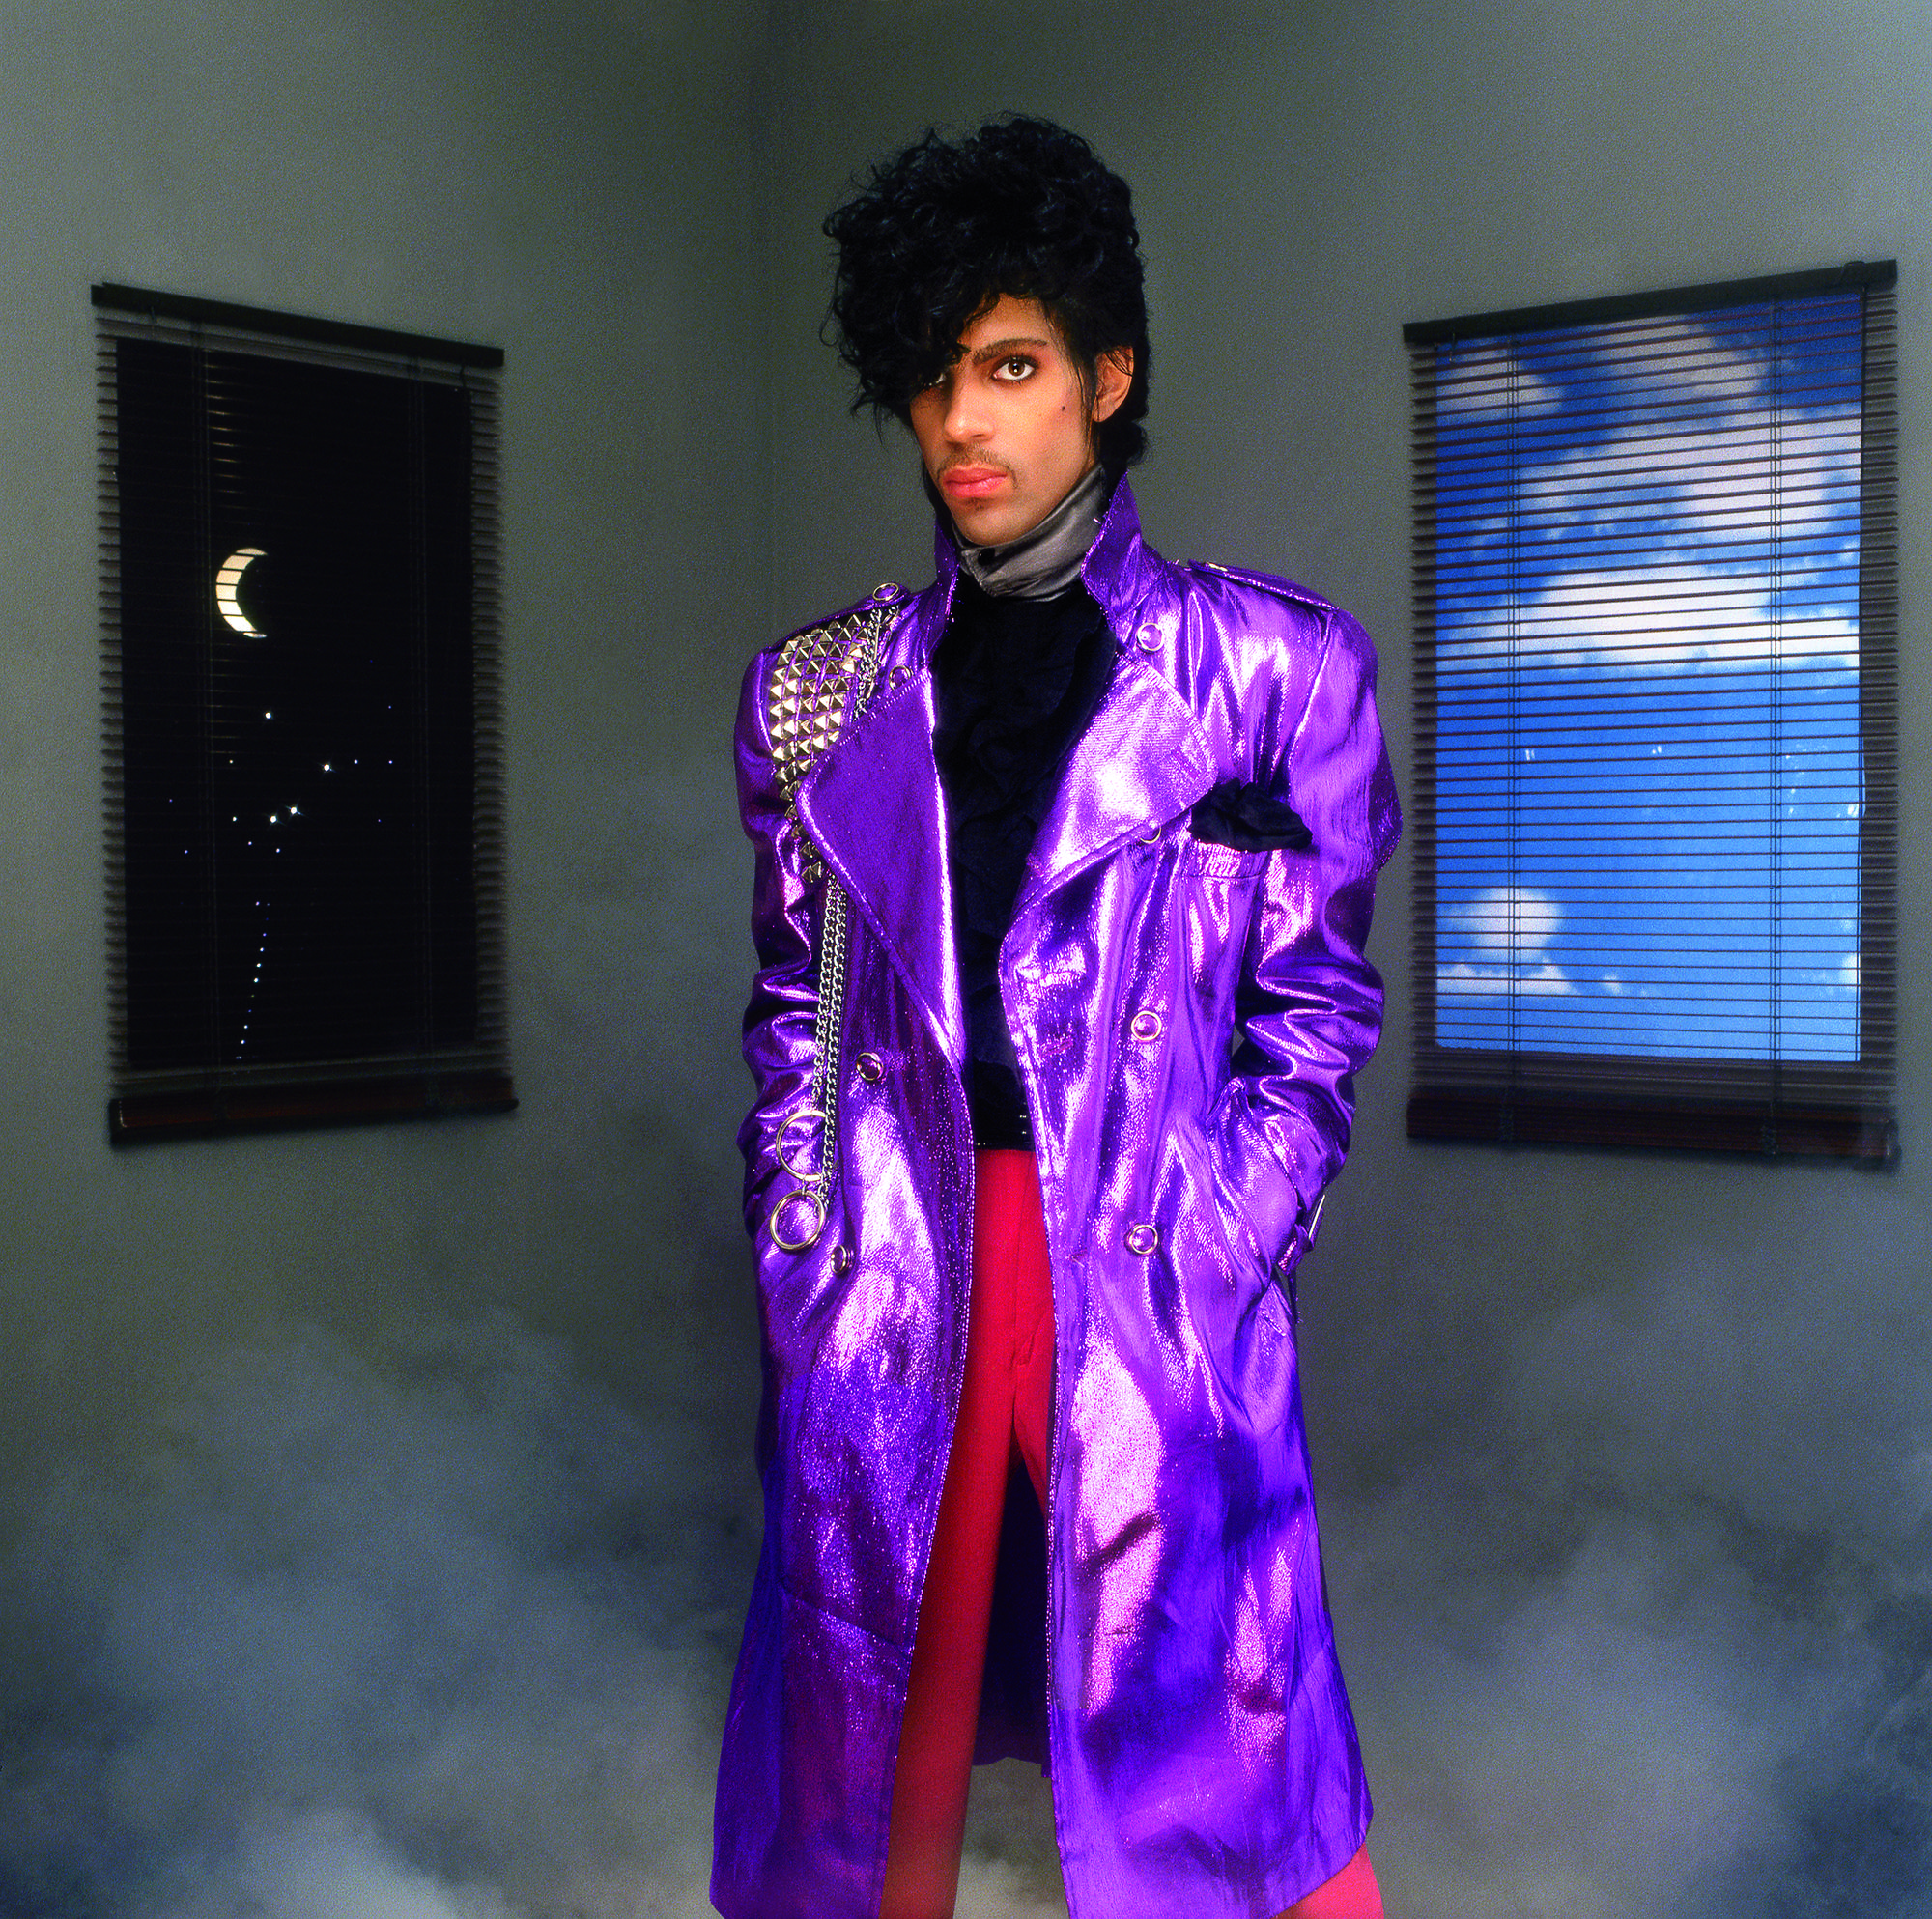 Prince in the famous purple trench coat